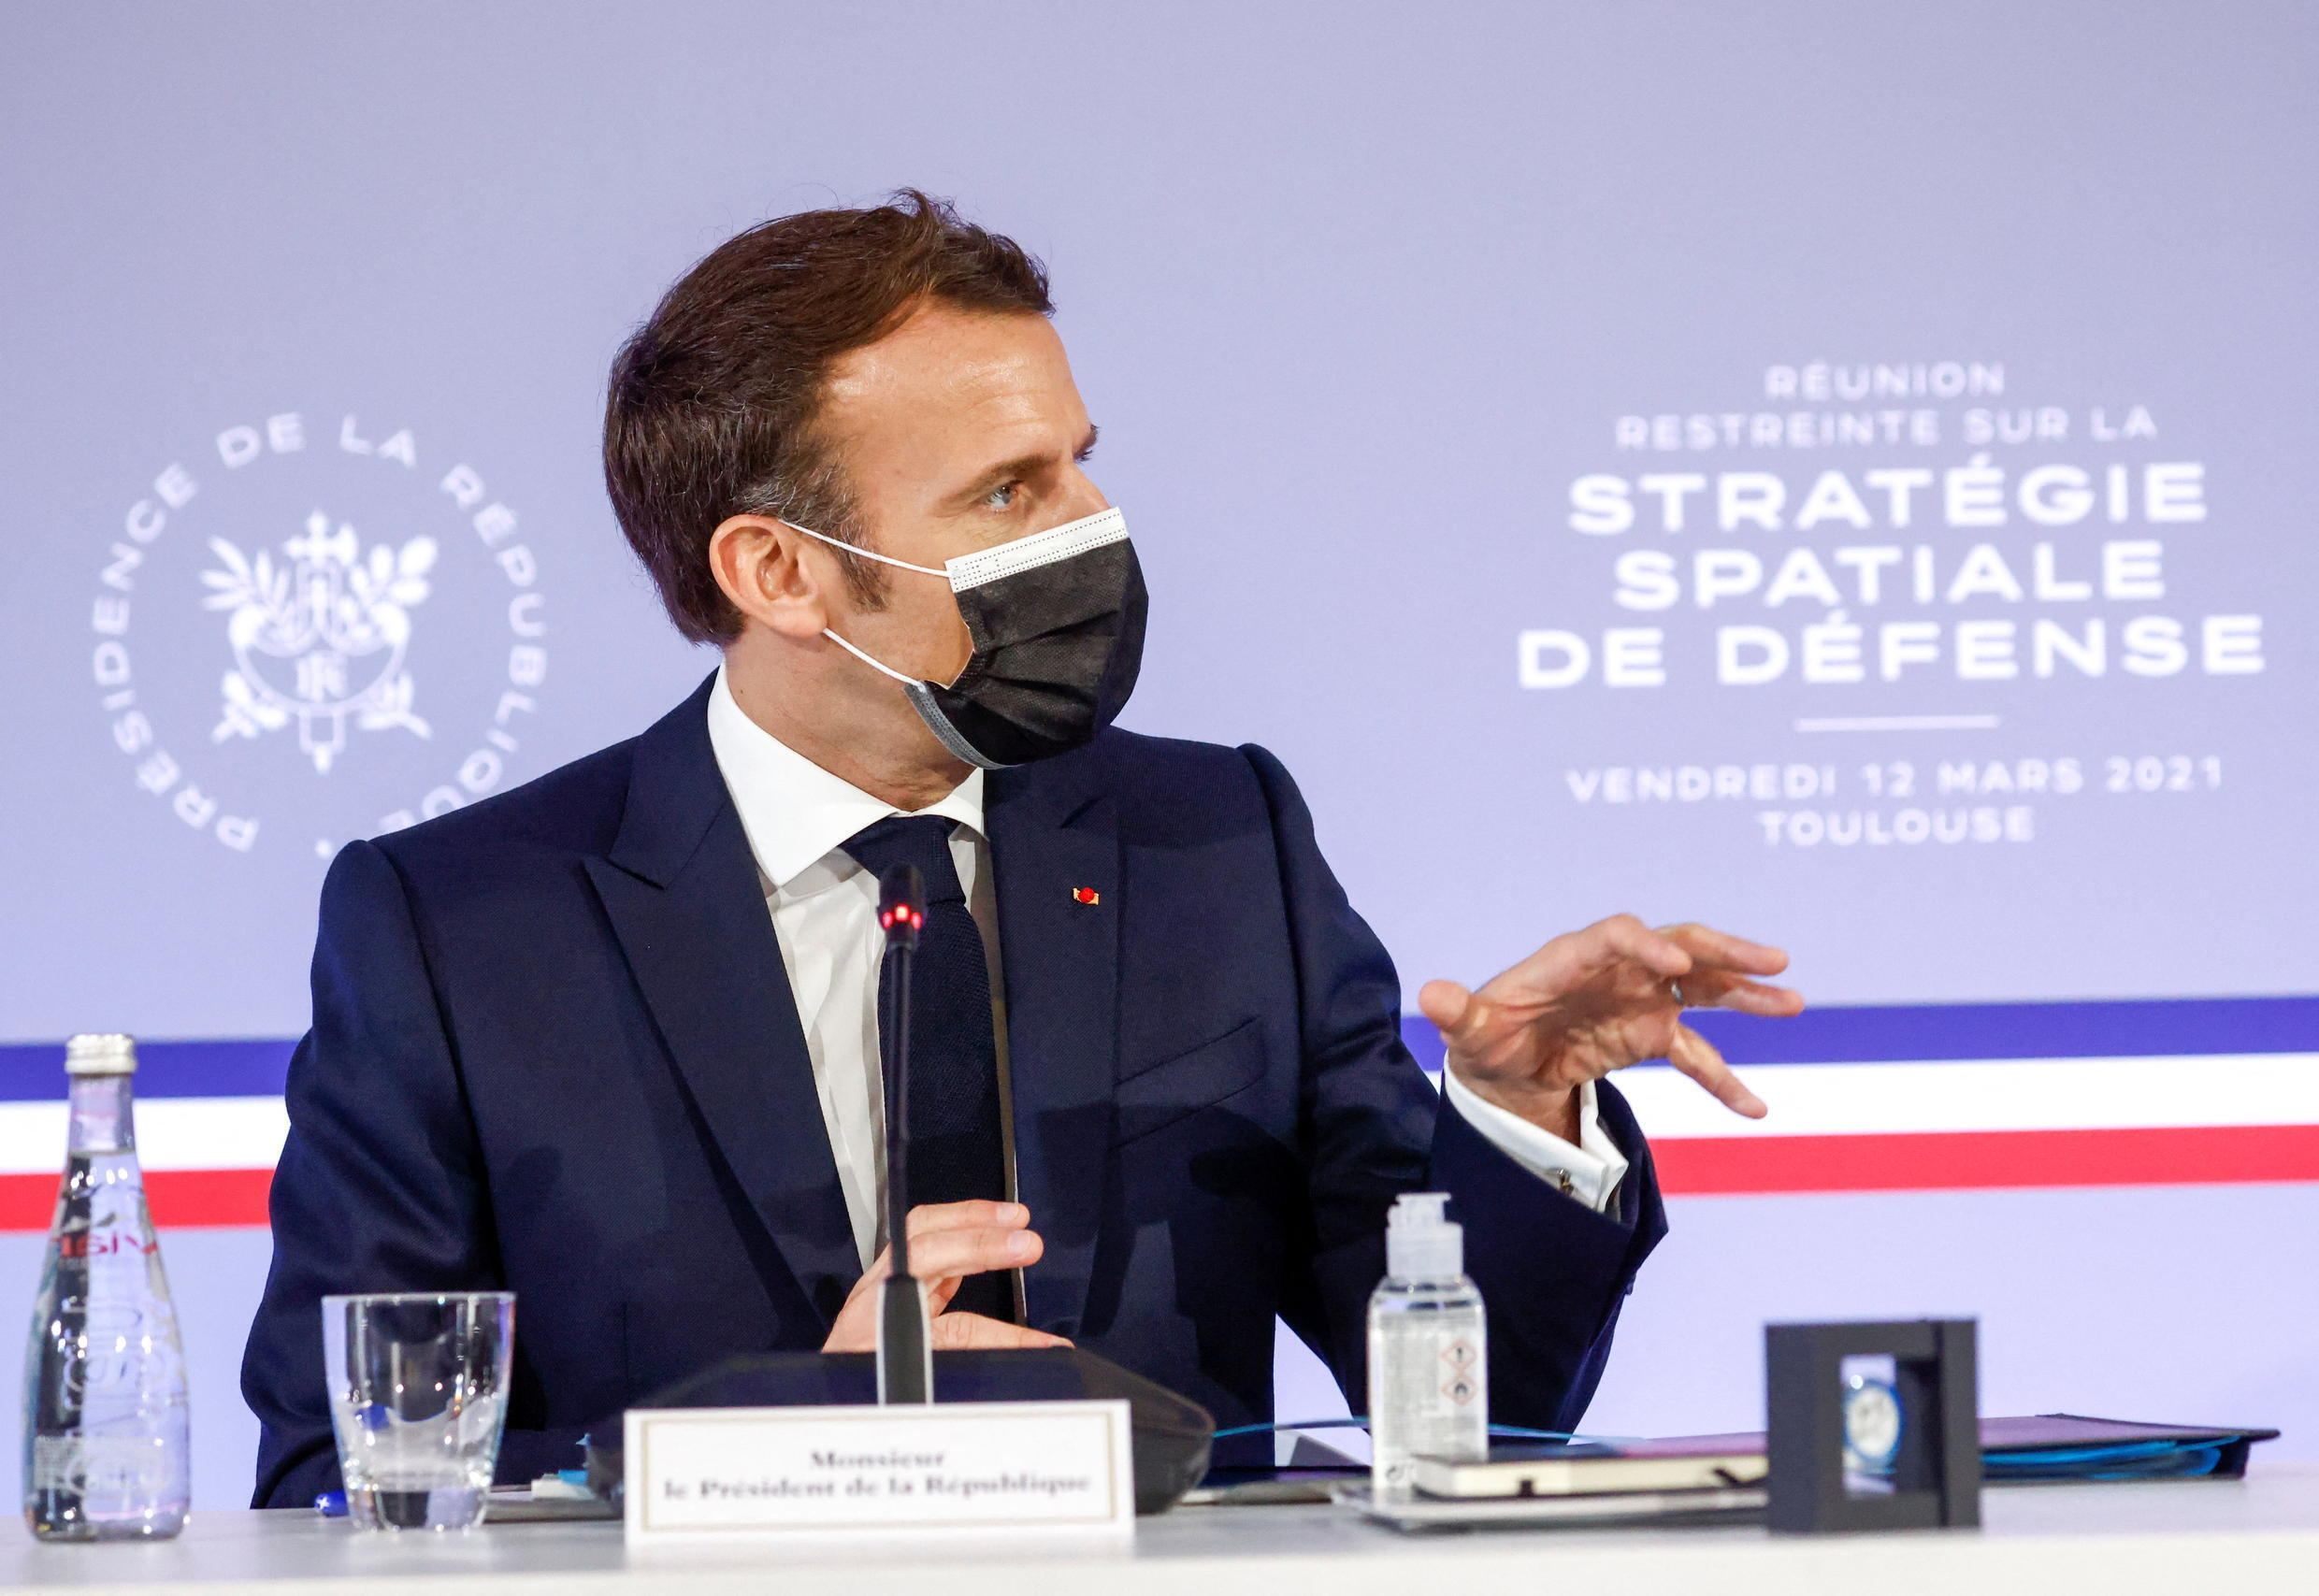 French President Emmanuel Macron at a meeting on defence space strategy in Toulouse, on 12 March, 2021.